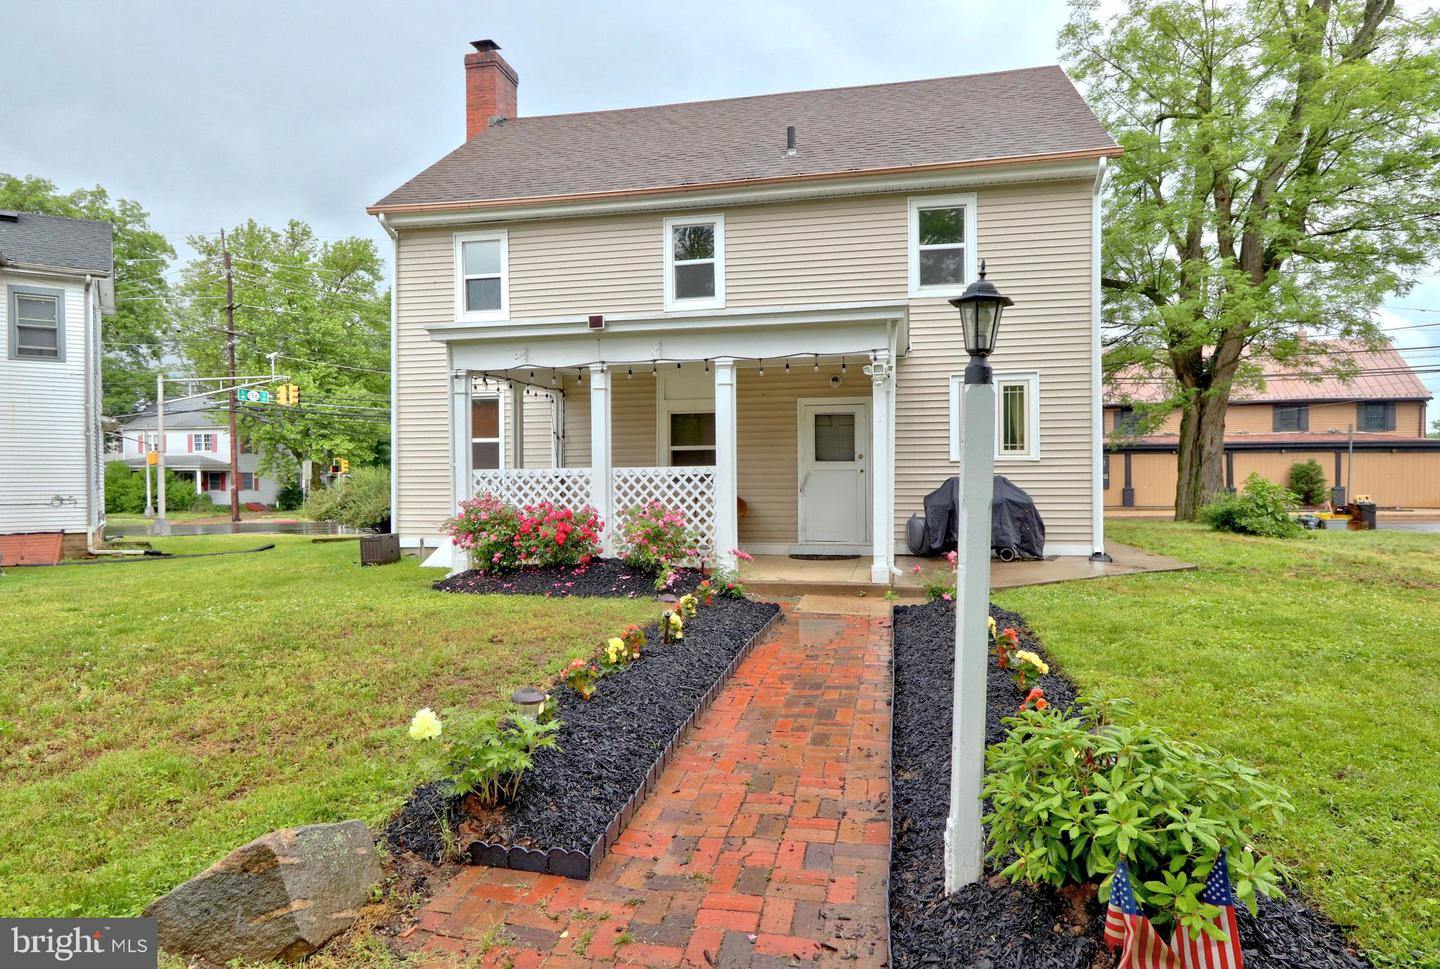 Property for Sale at Hamilton, New Jersey 08620 United States